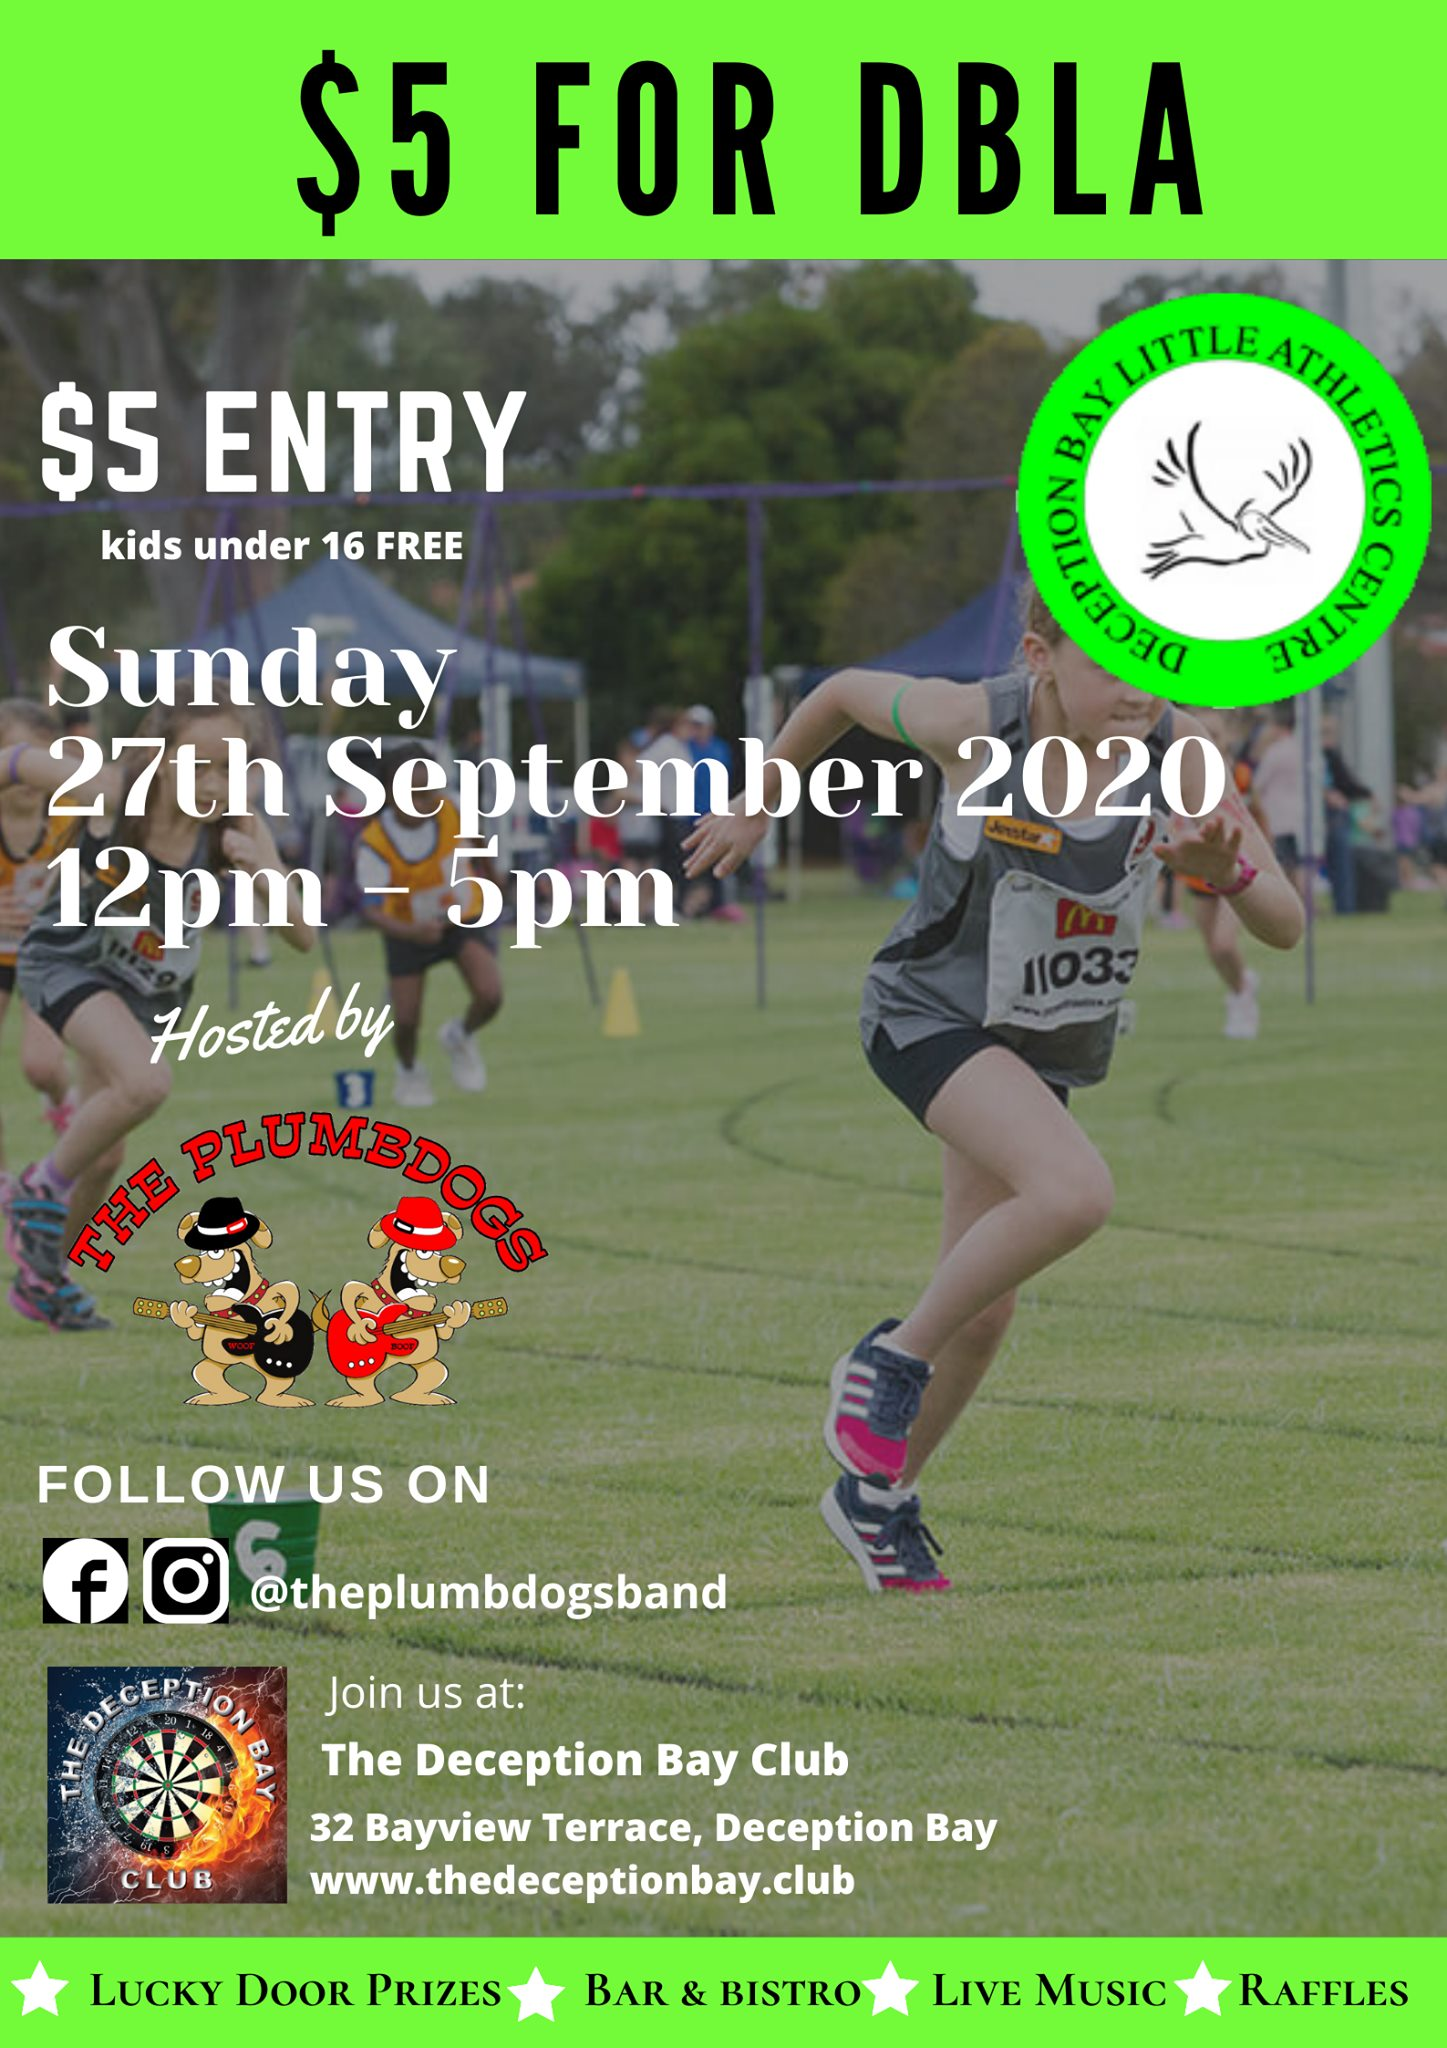 $5 For Charity - Deception Bay Little Athletics